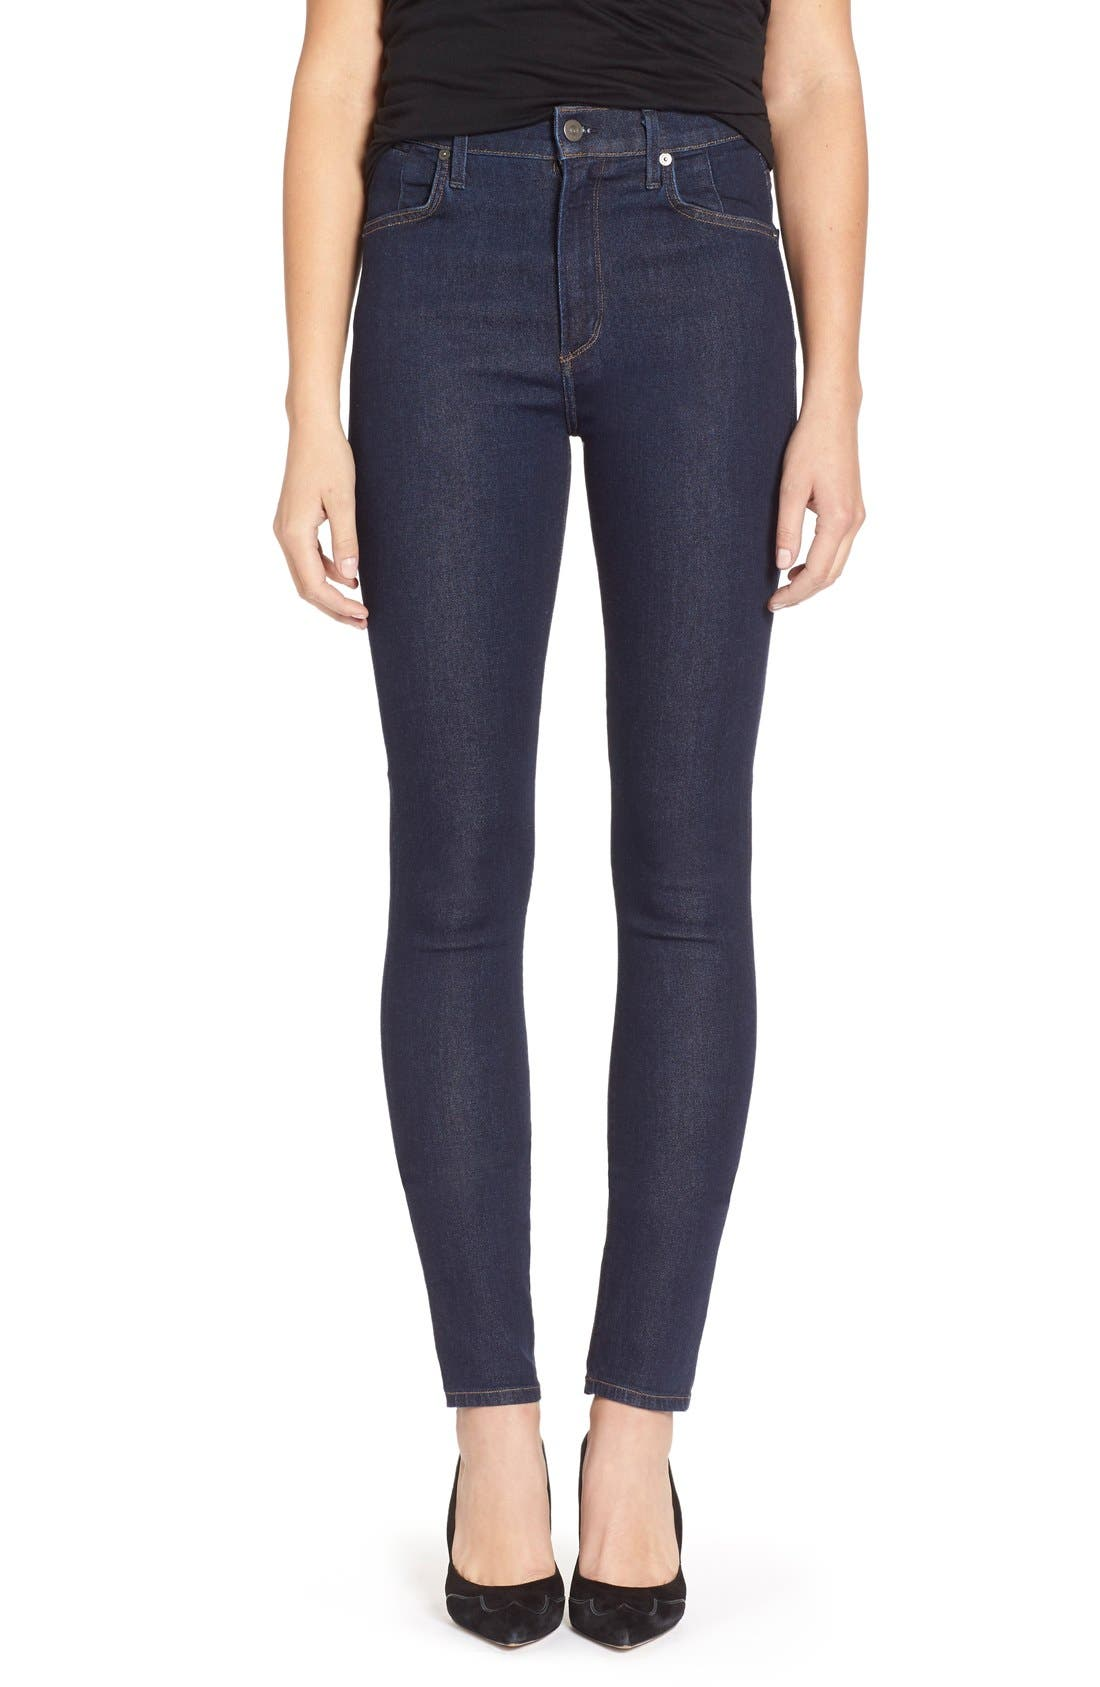 Alternate Image 1 Selected - Citizens of Humanity 'Carlie' High Rise Skinny Jeans (Clean Blue)